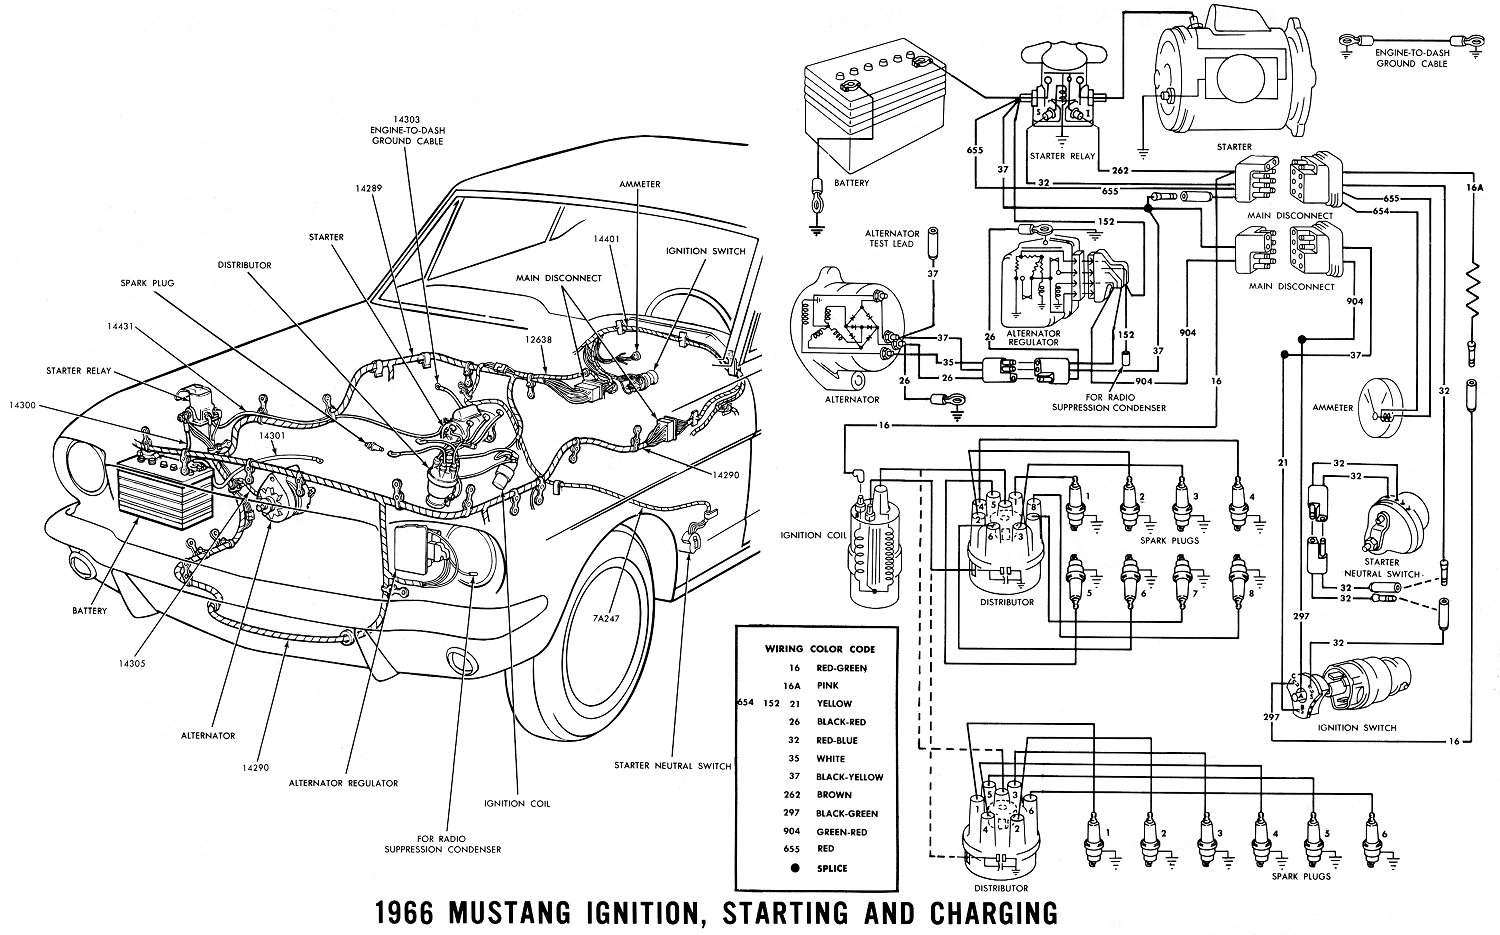 1966 Ford Mustang Engine Diagram Not Lossing Wiring Diagram \u2022 1967 Ford  Mustang Turn Signal 1967 Ford Mustang Engine Diagram